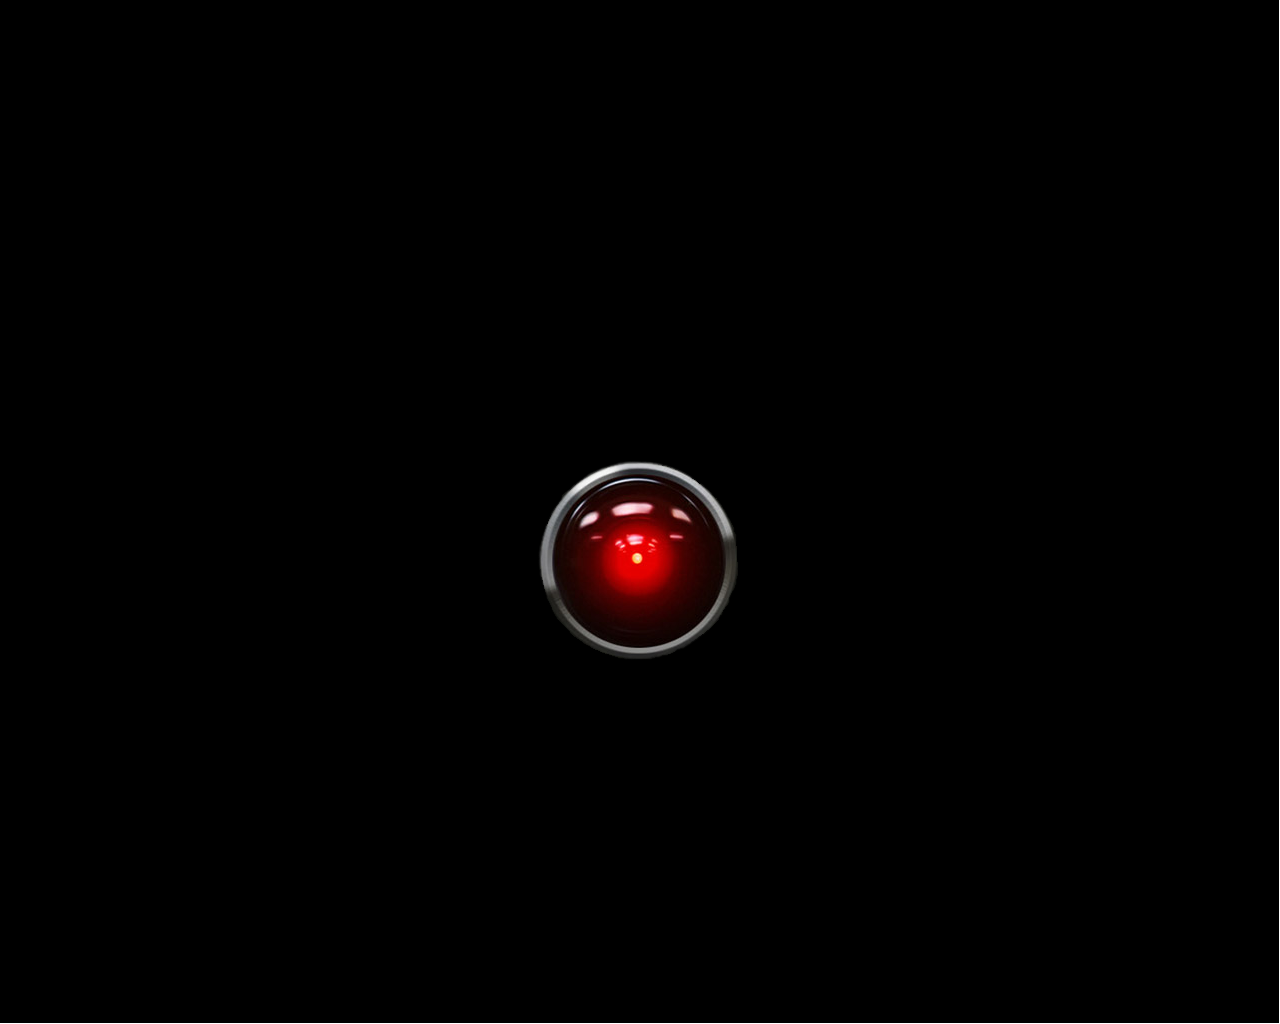 43 Hal 9000 Iphone Wallpaper On Wallpapersafari